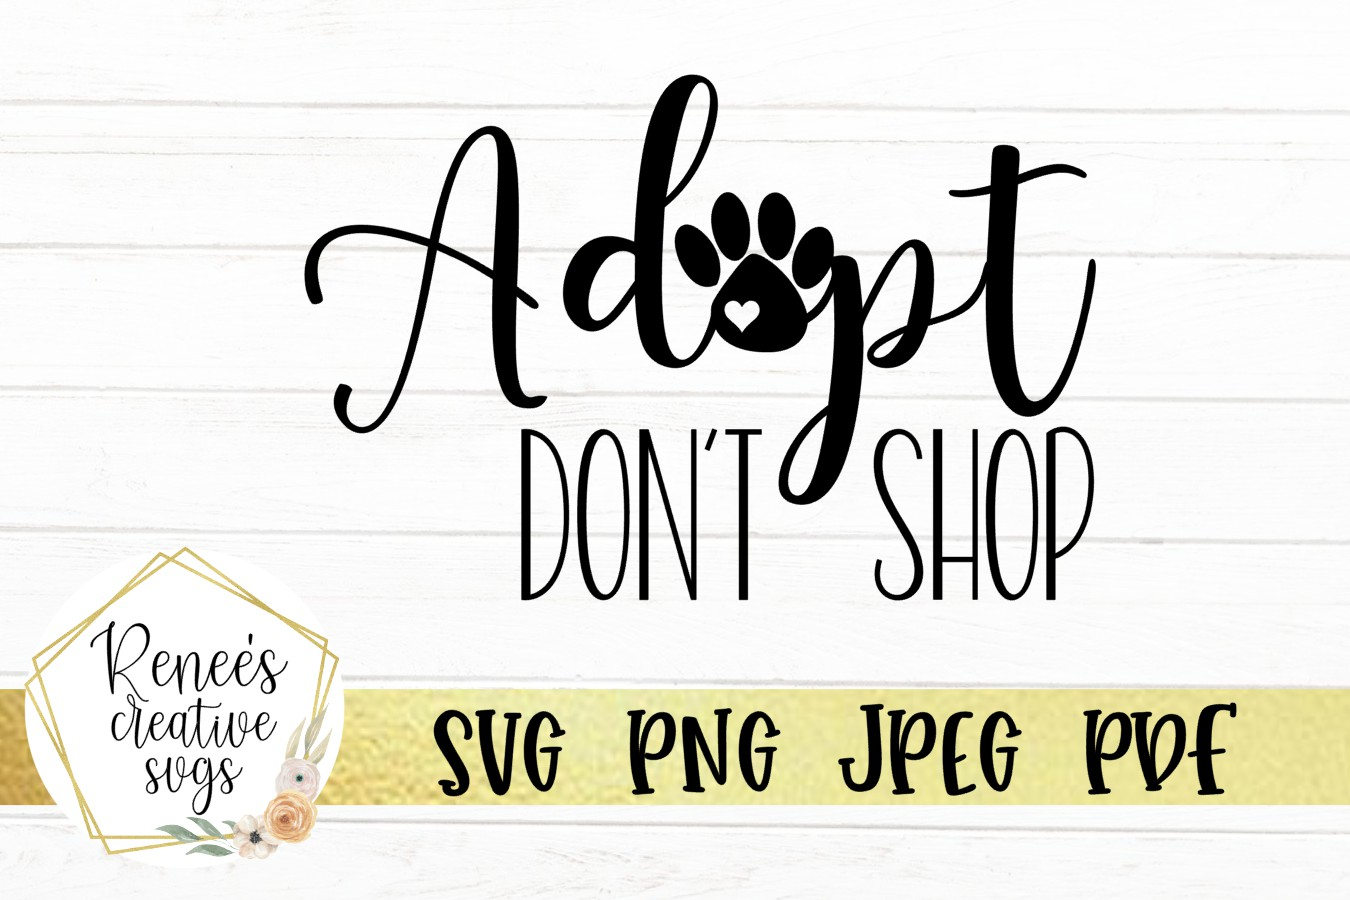 Adopt Don't Shop | Pets | SVG Cutting File example image 2